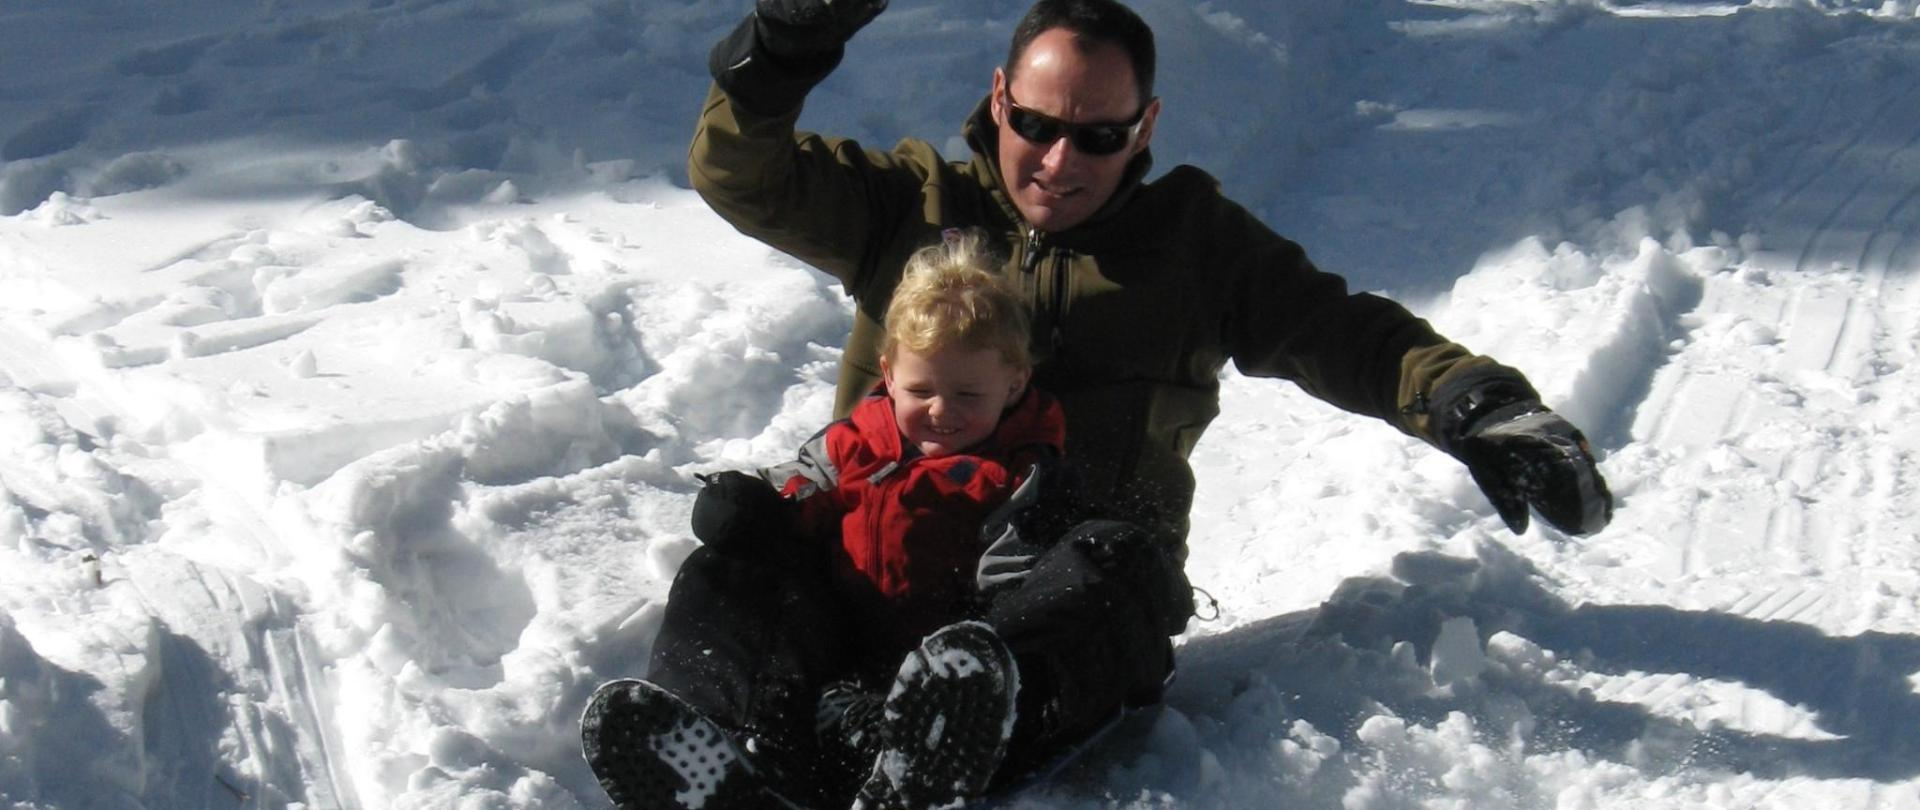 sledding with dad.JPG